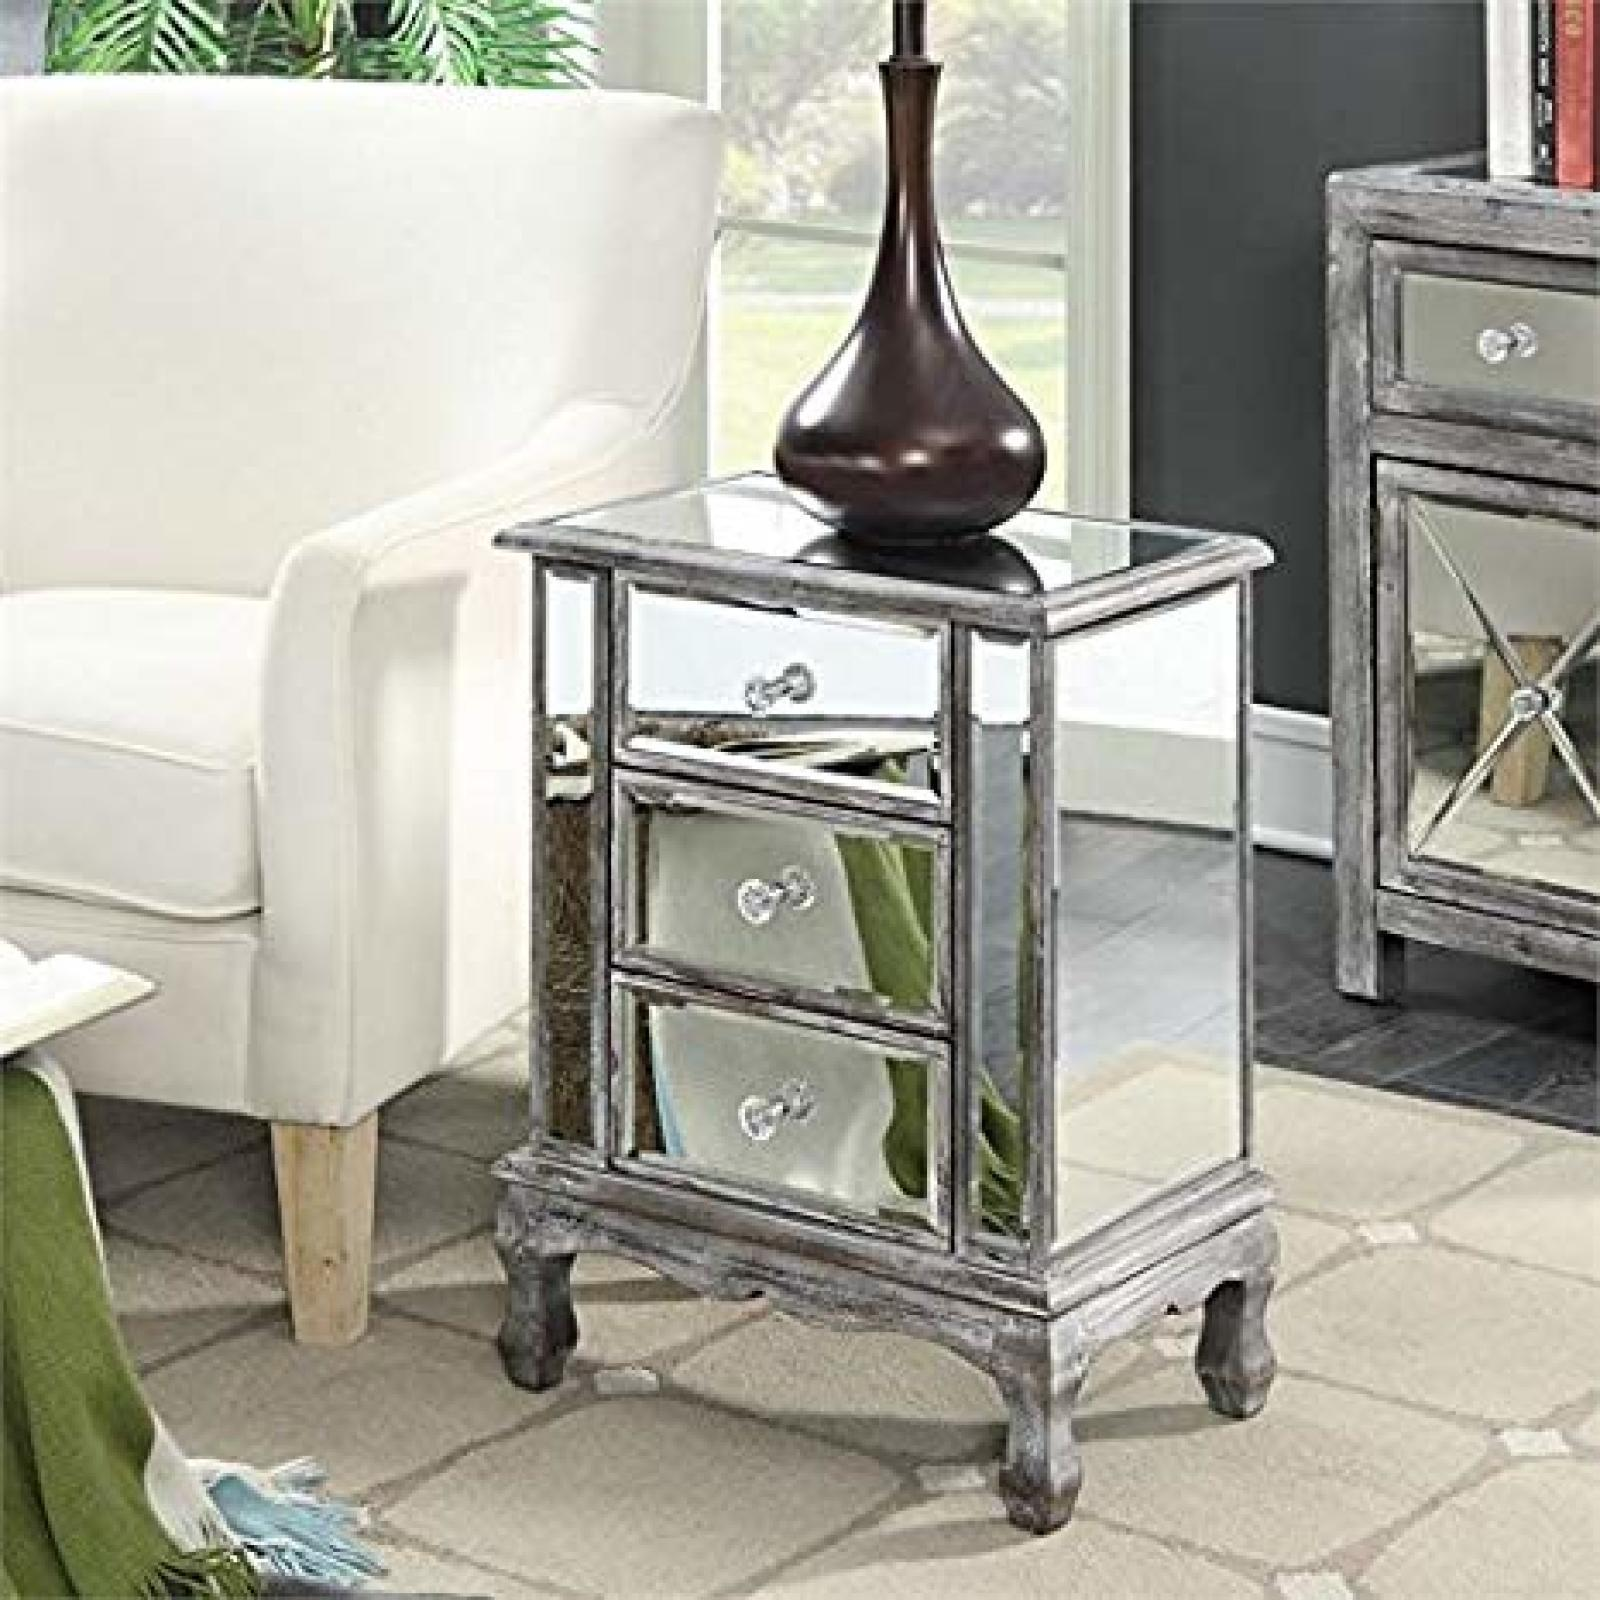 drawer mirrored accent table nightstand chest dresser storage with mirror decor gre carpet tile edging strip marble living room diy coffee target white comforter outdoor daybed